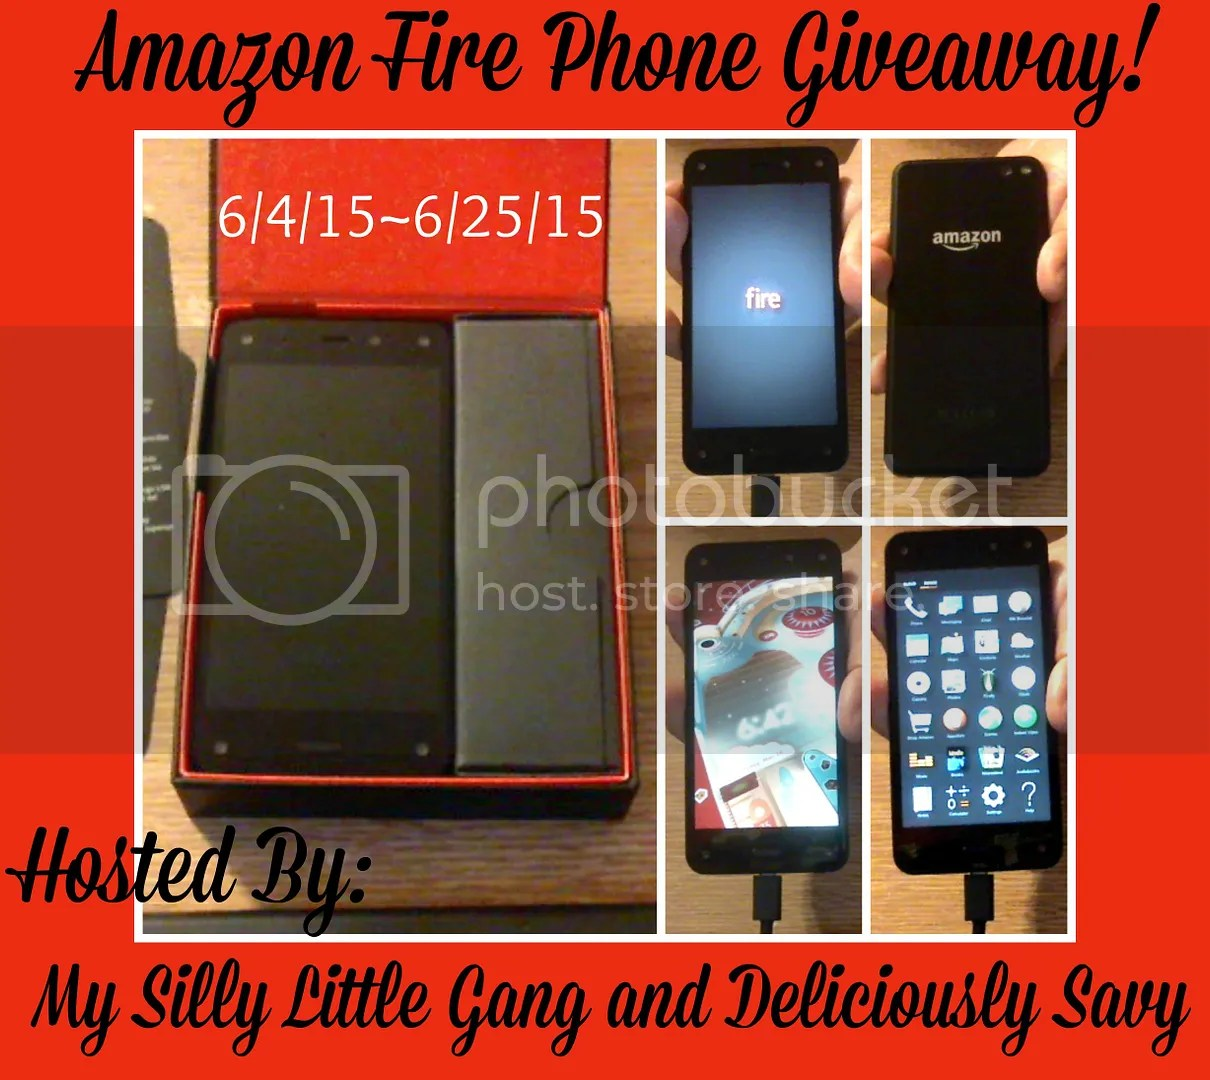 amazon-fire-phone-giveaway